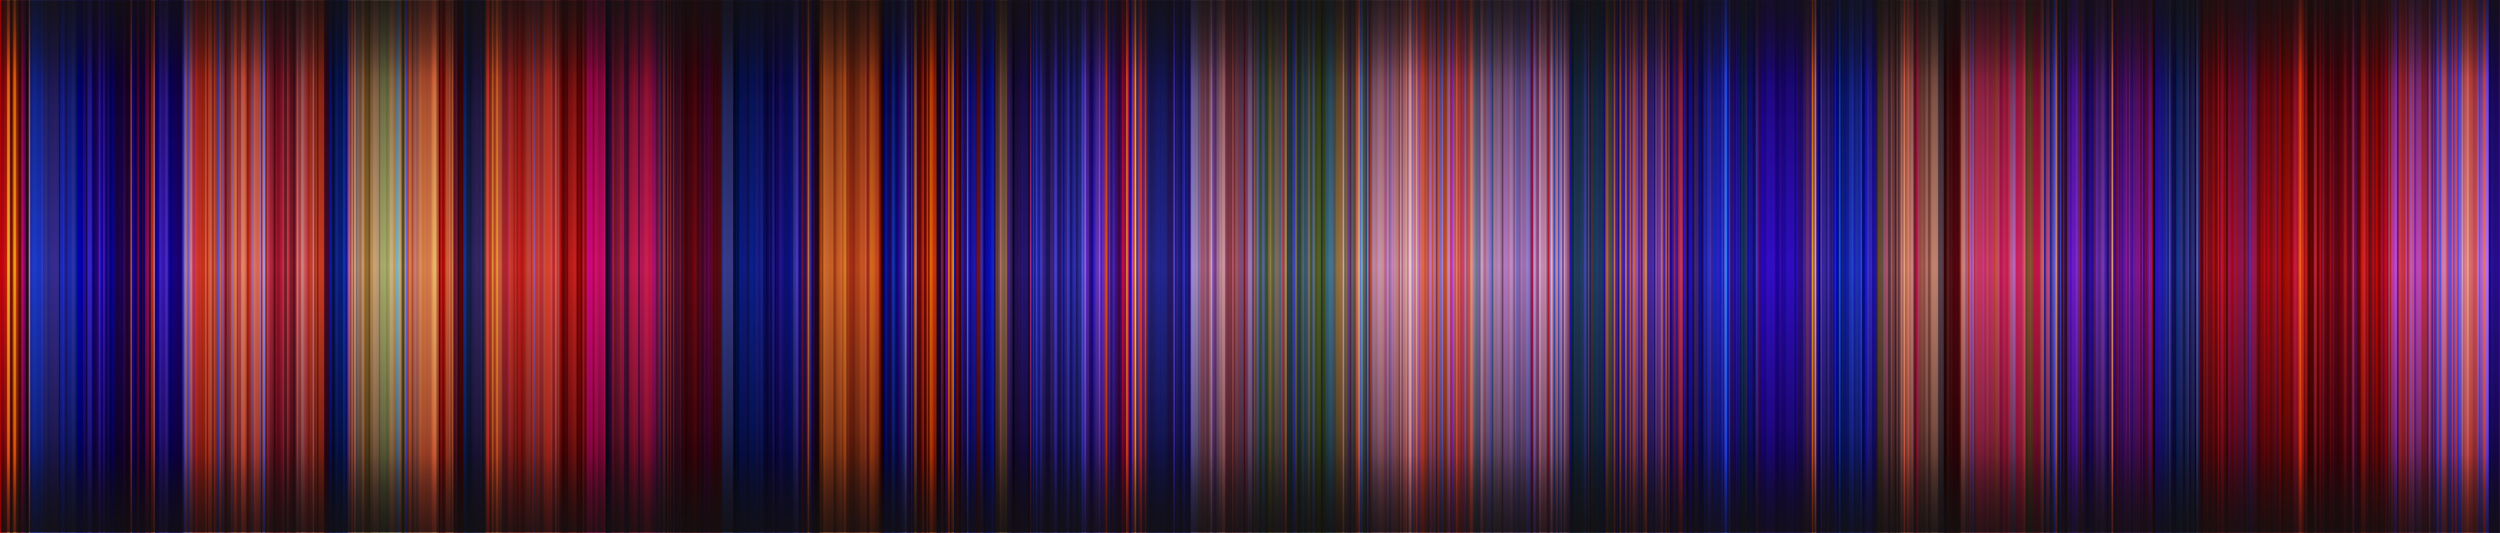 Popular movies, reduced solely to their colors